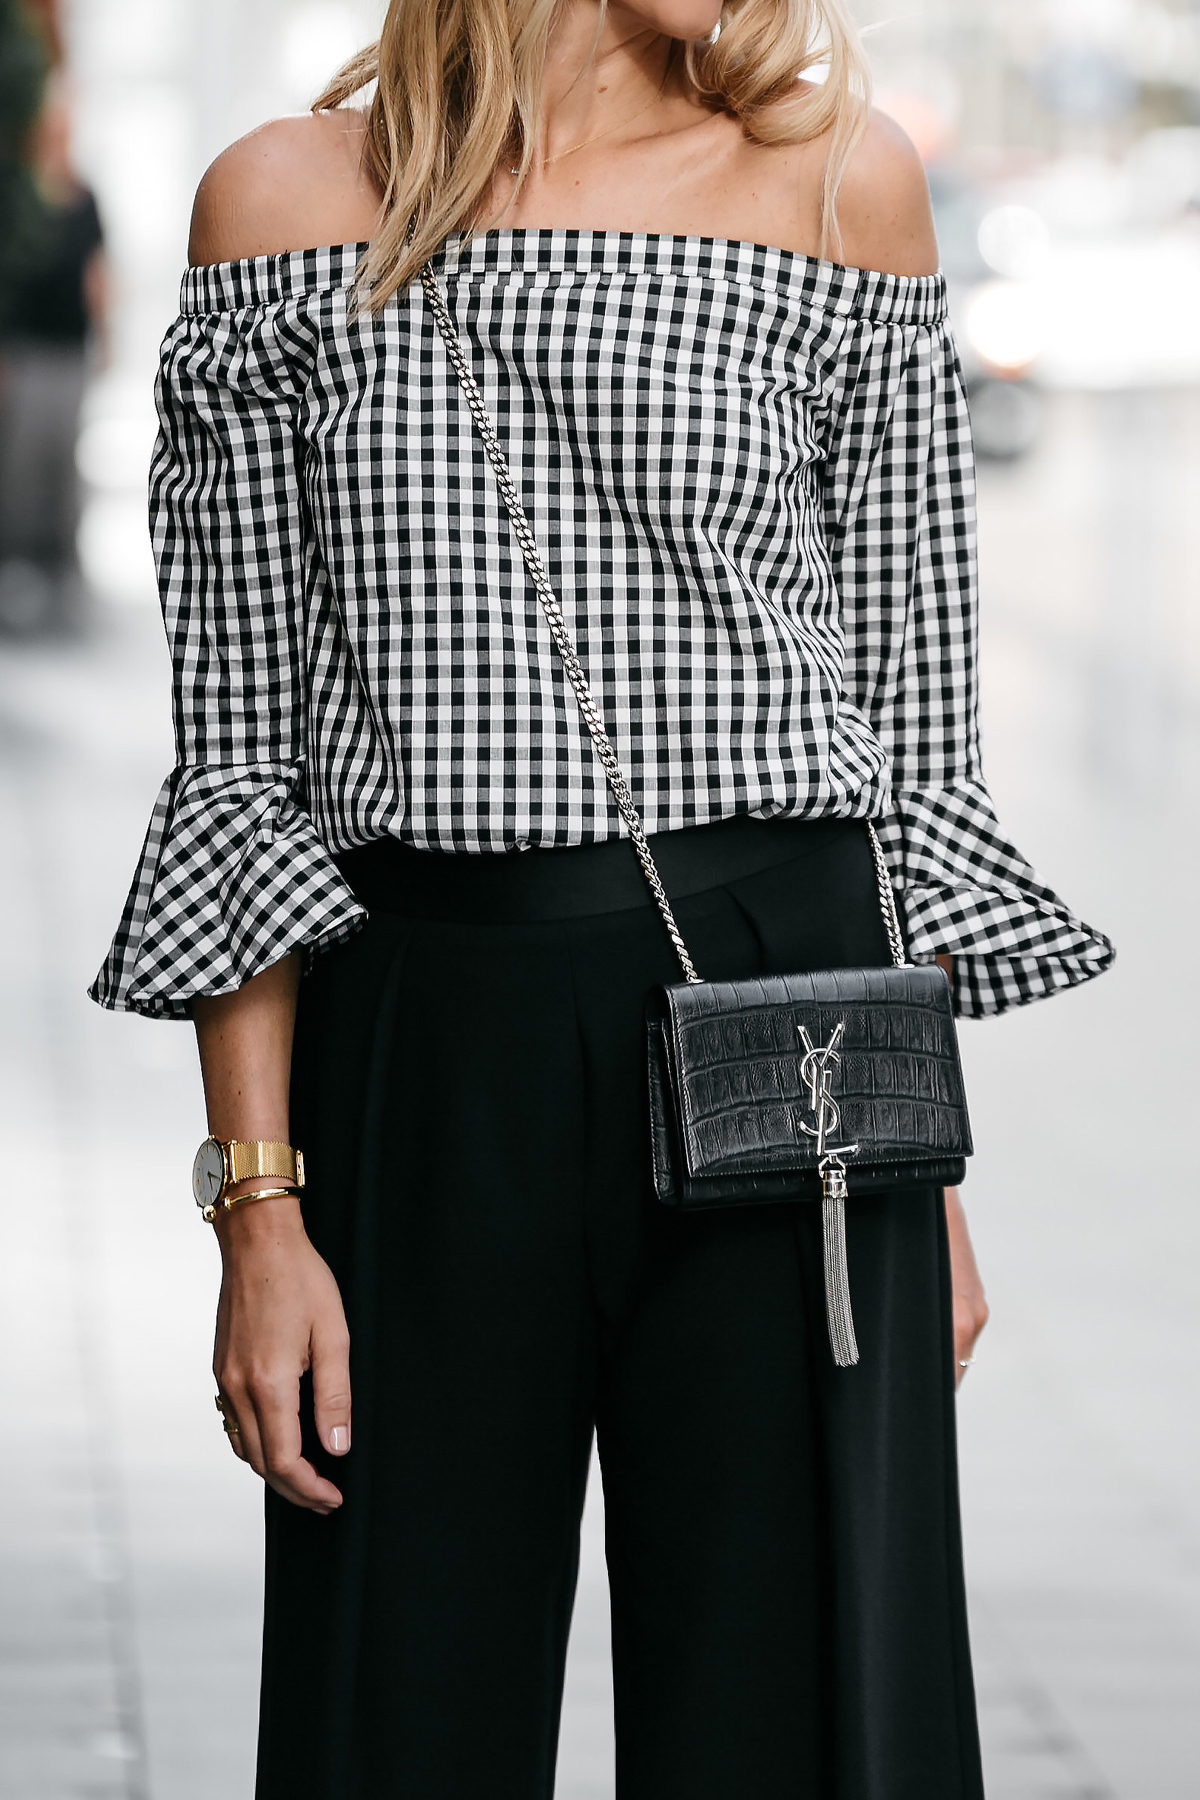 Blonde woman wearing nordstrom gingham off-the-shoulder top outfit ysl crossbody street style dallas blogger fashion blogger